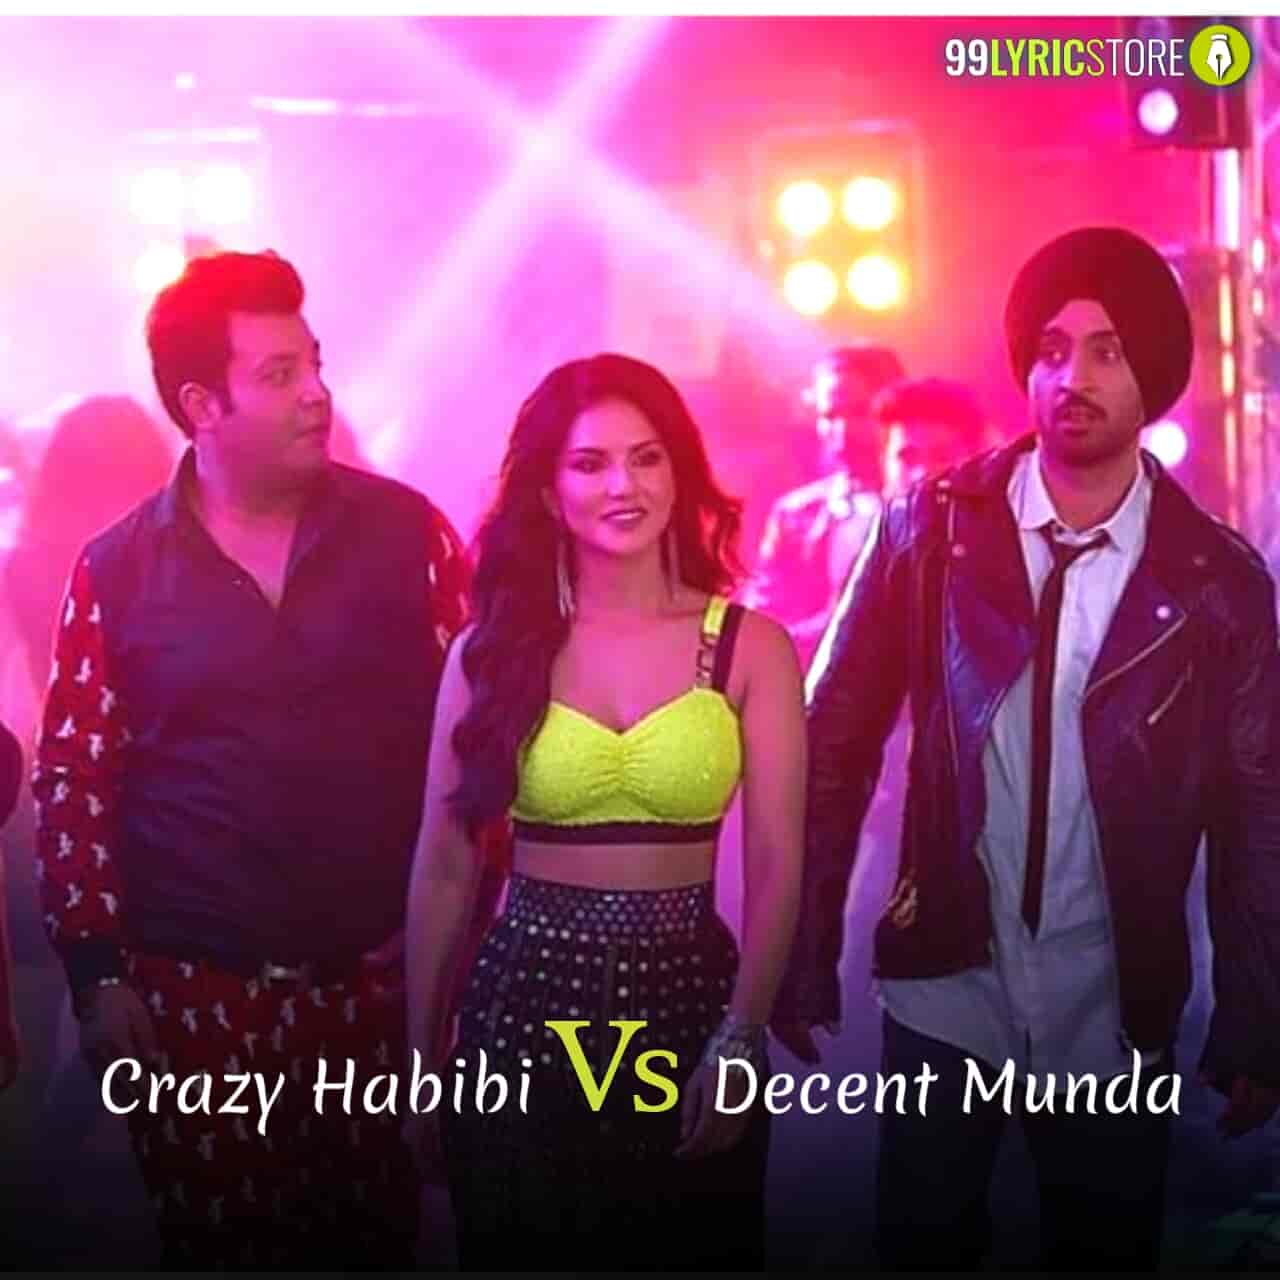 Crazy Habibi vs Decent Munda sung by Guru Randhawa